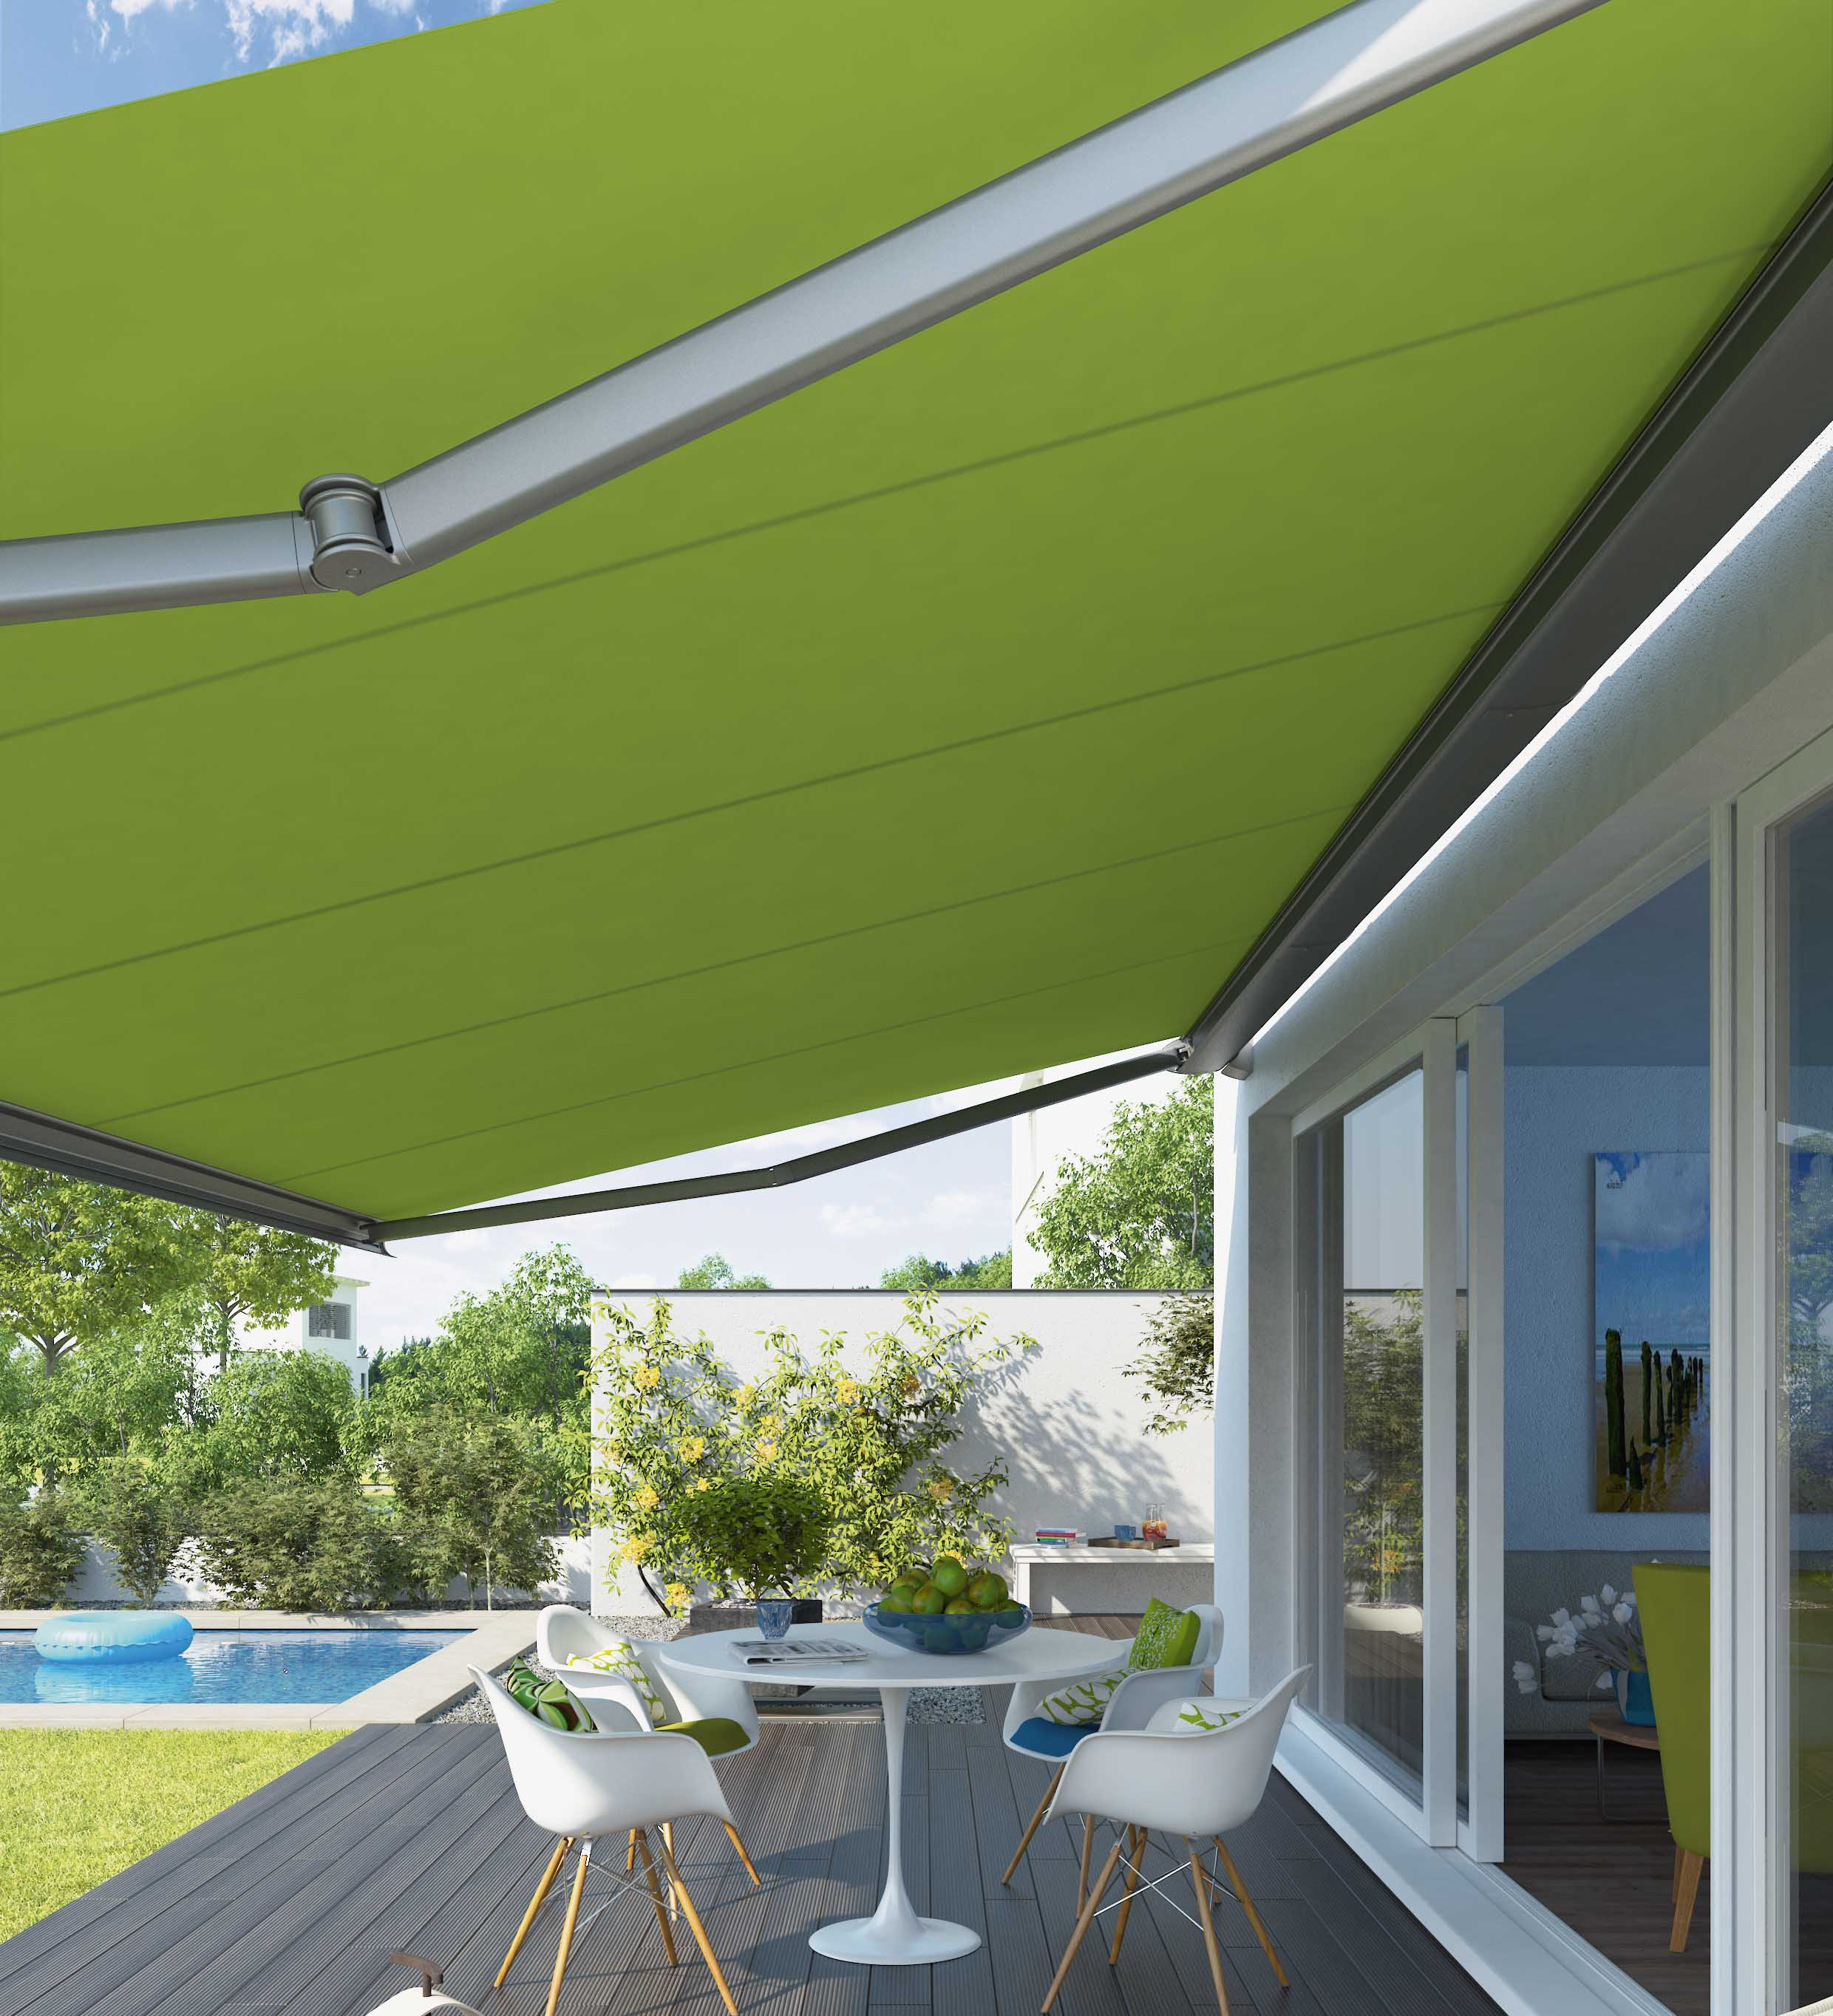 Green awning by the pool